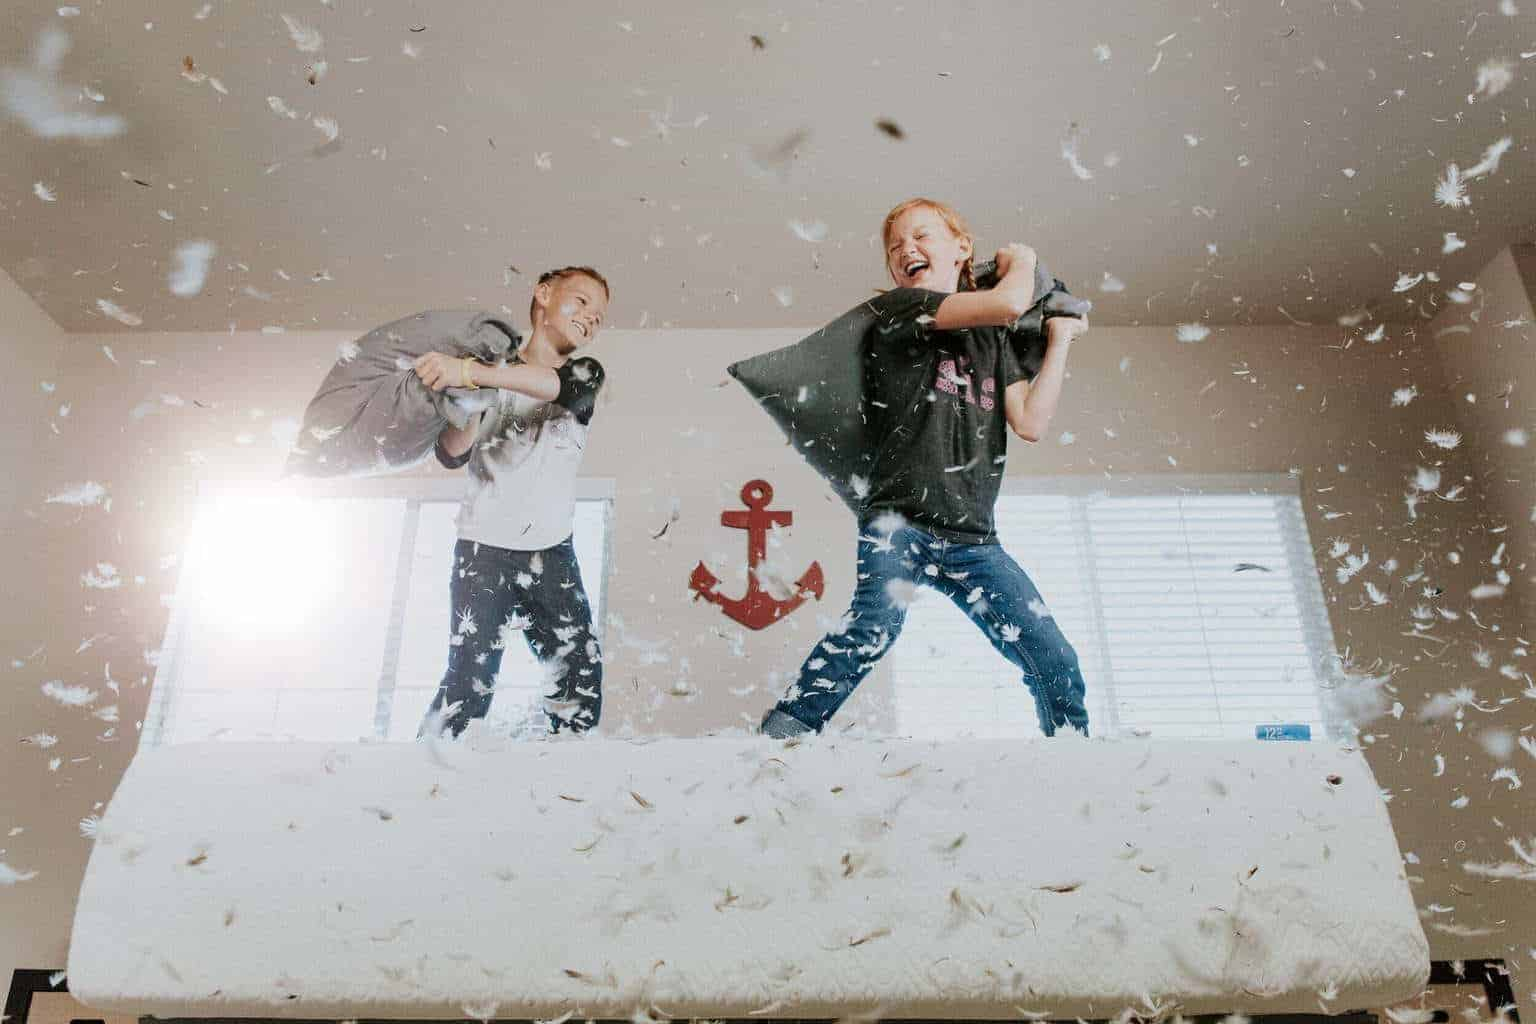 A wide variety of activities can serve as reinforcers. Allowing children to have a pillow fight would be considered an example of a positive reinforcer, even though it makes a mess! Use with caution.